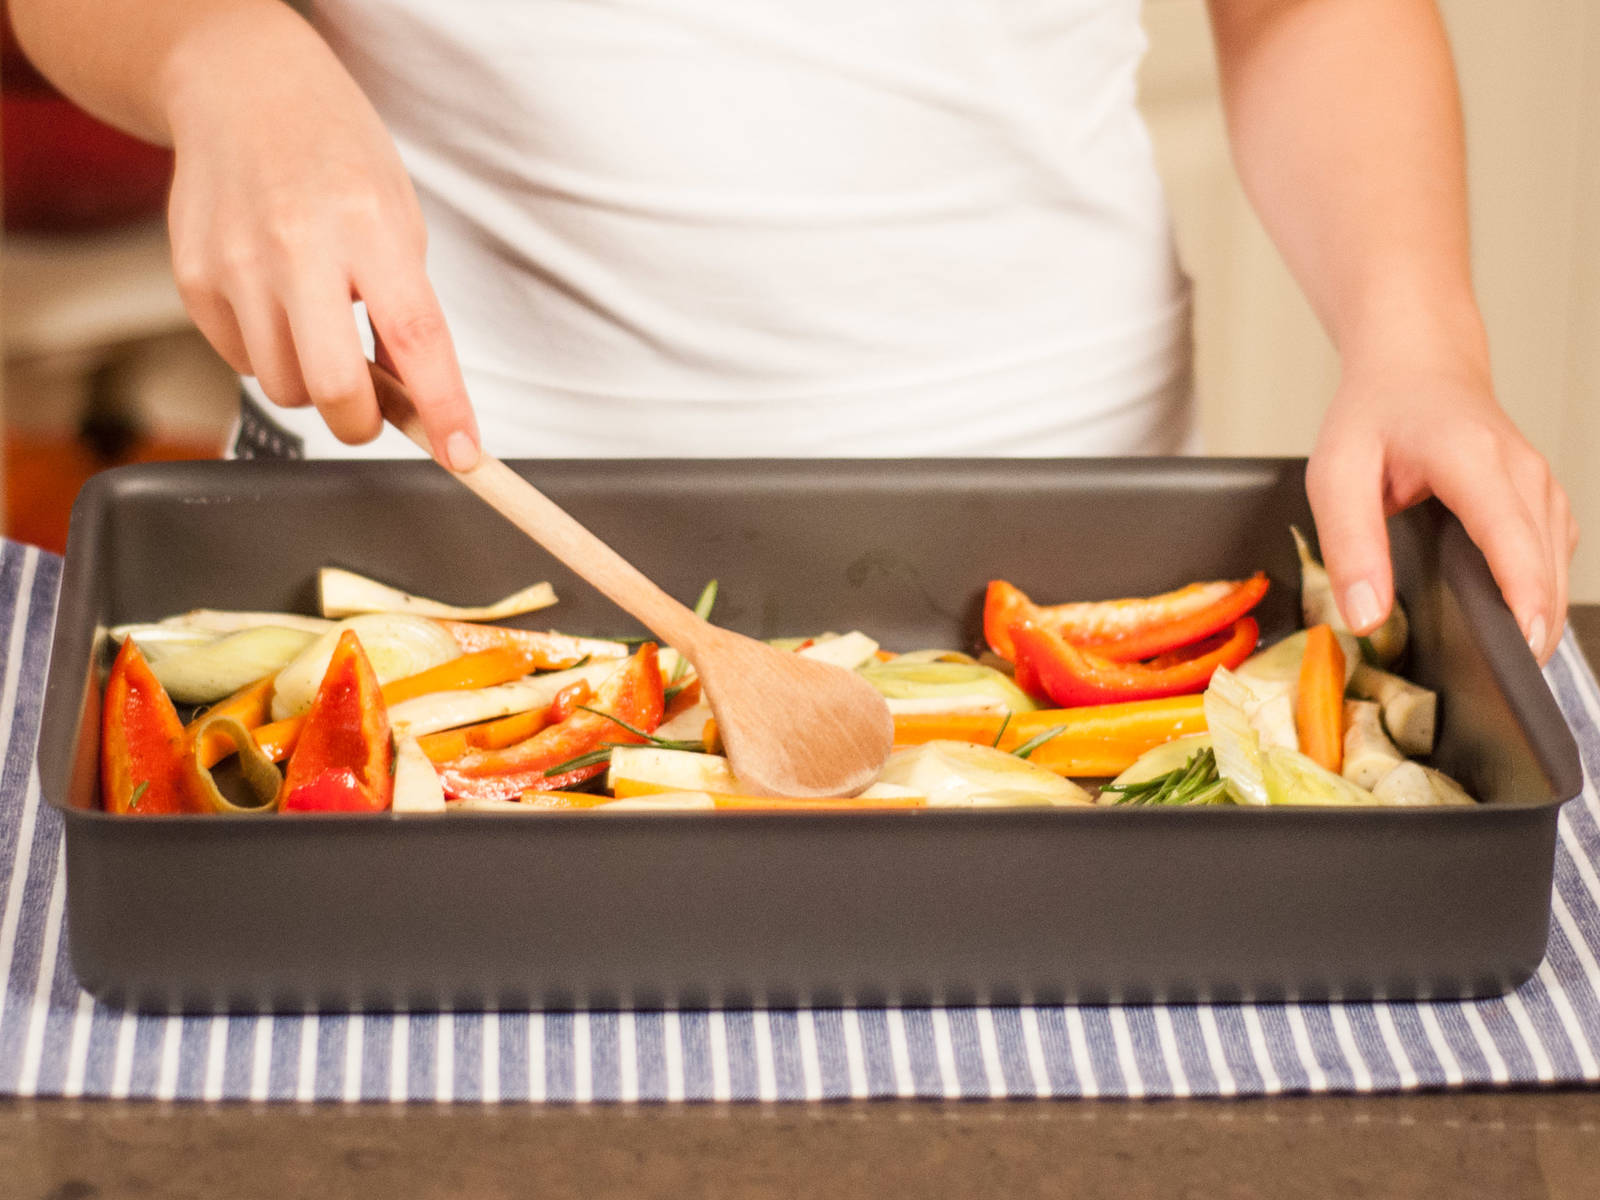 Transfer marinated vegetables to a casserole dish. Roast in a preheated oven at 220°C/425°F for approx. 20 – 30 min. until caramelized and tender. Enjoy with a main course or by itself.